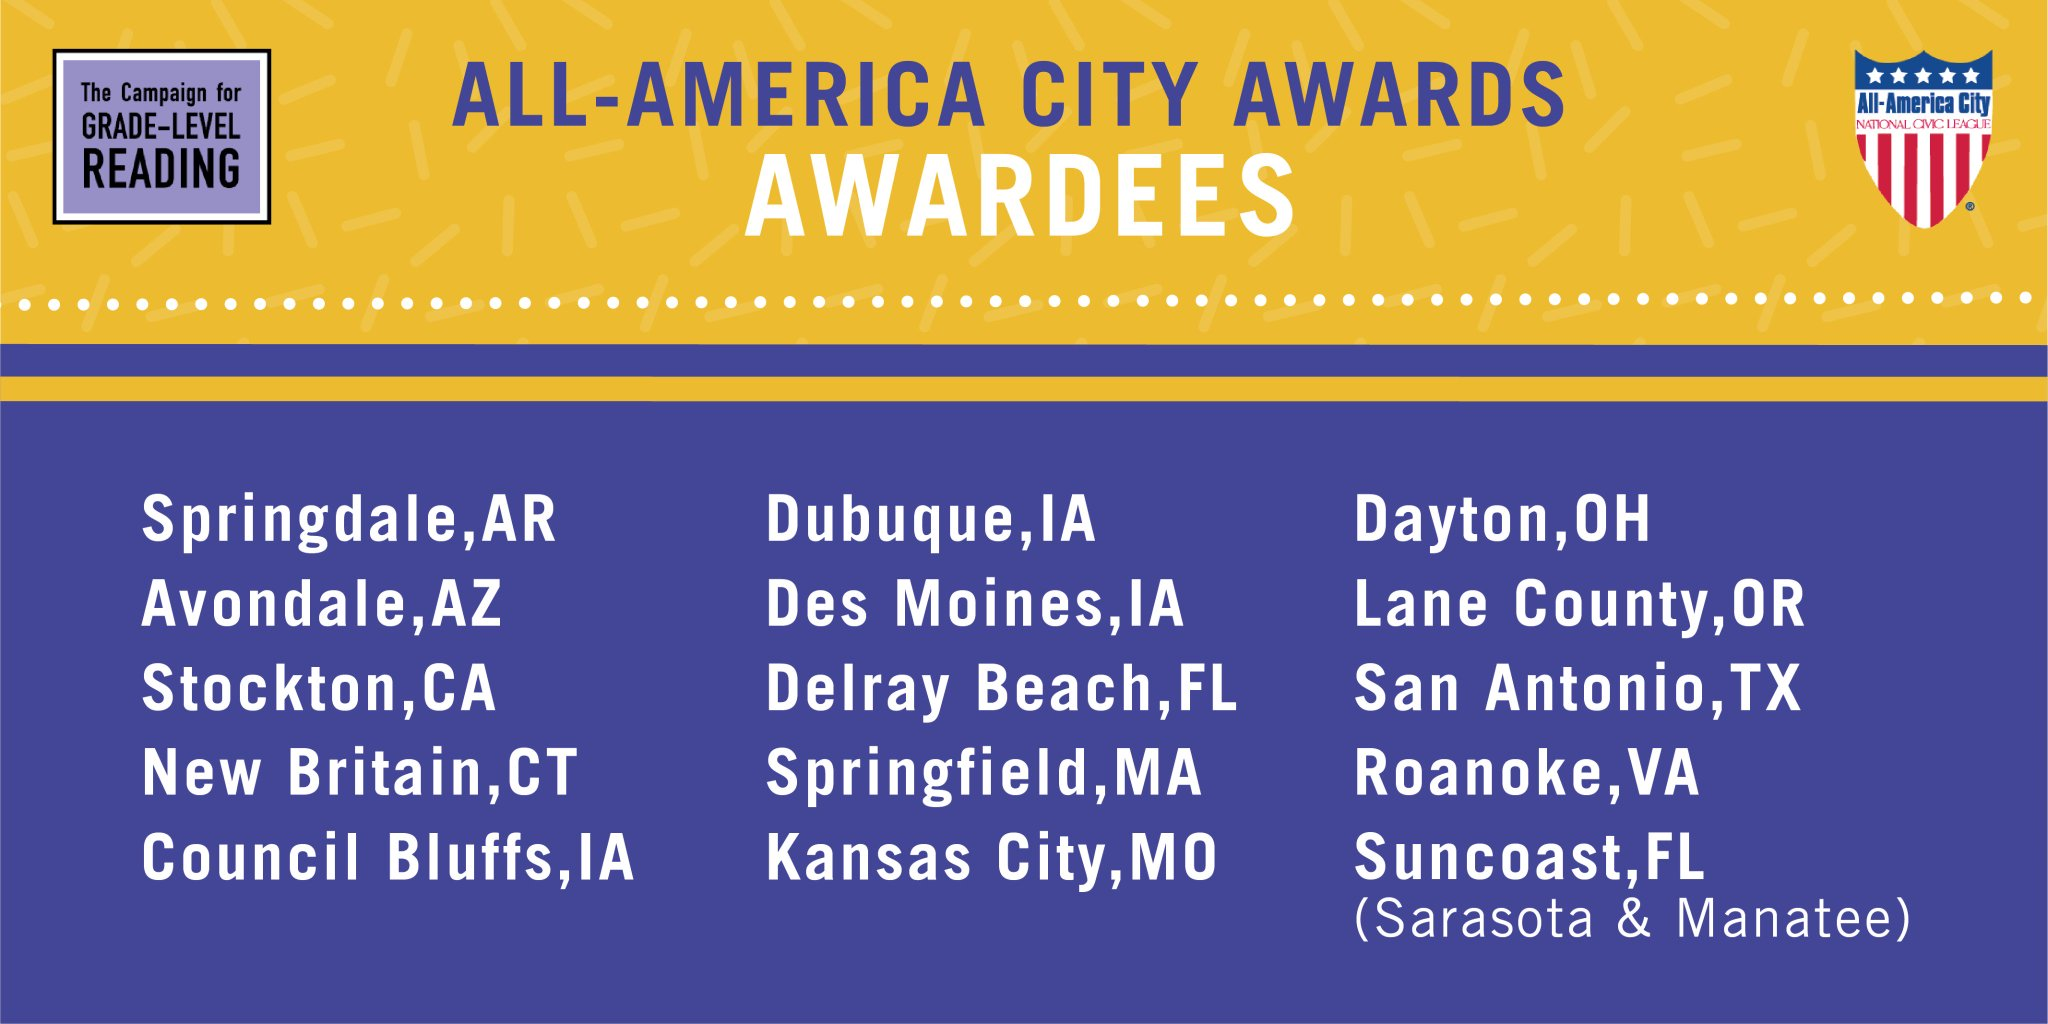 Congratulations to our All-America City Awardees for the exemplarily work you do to move the needle in grade-level reading! #GLRWeek https://t.co/GqDNvgLpwd